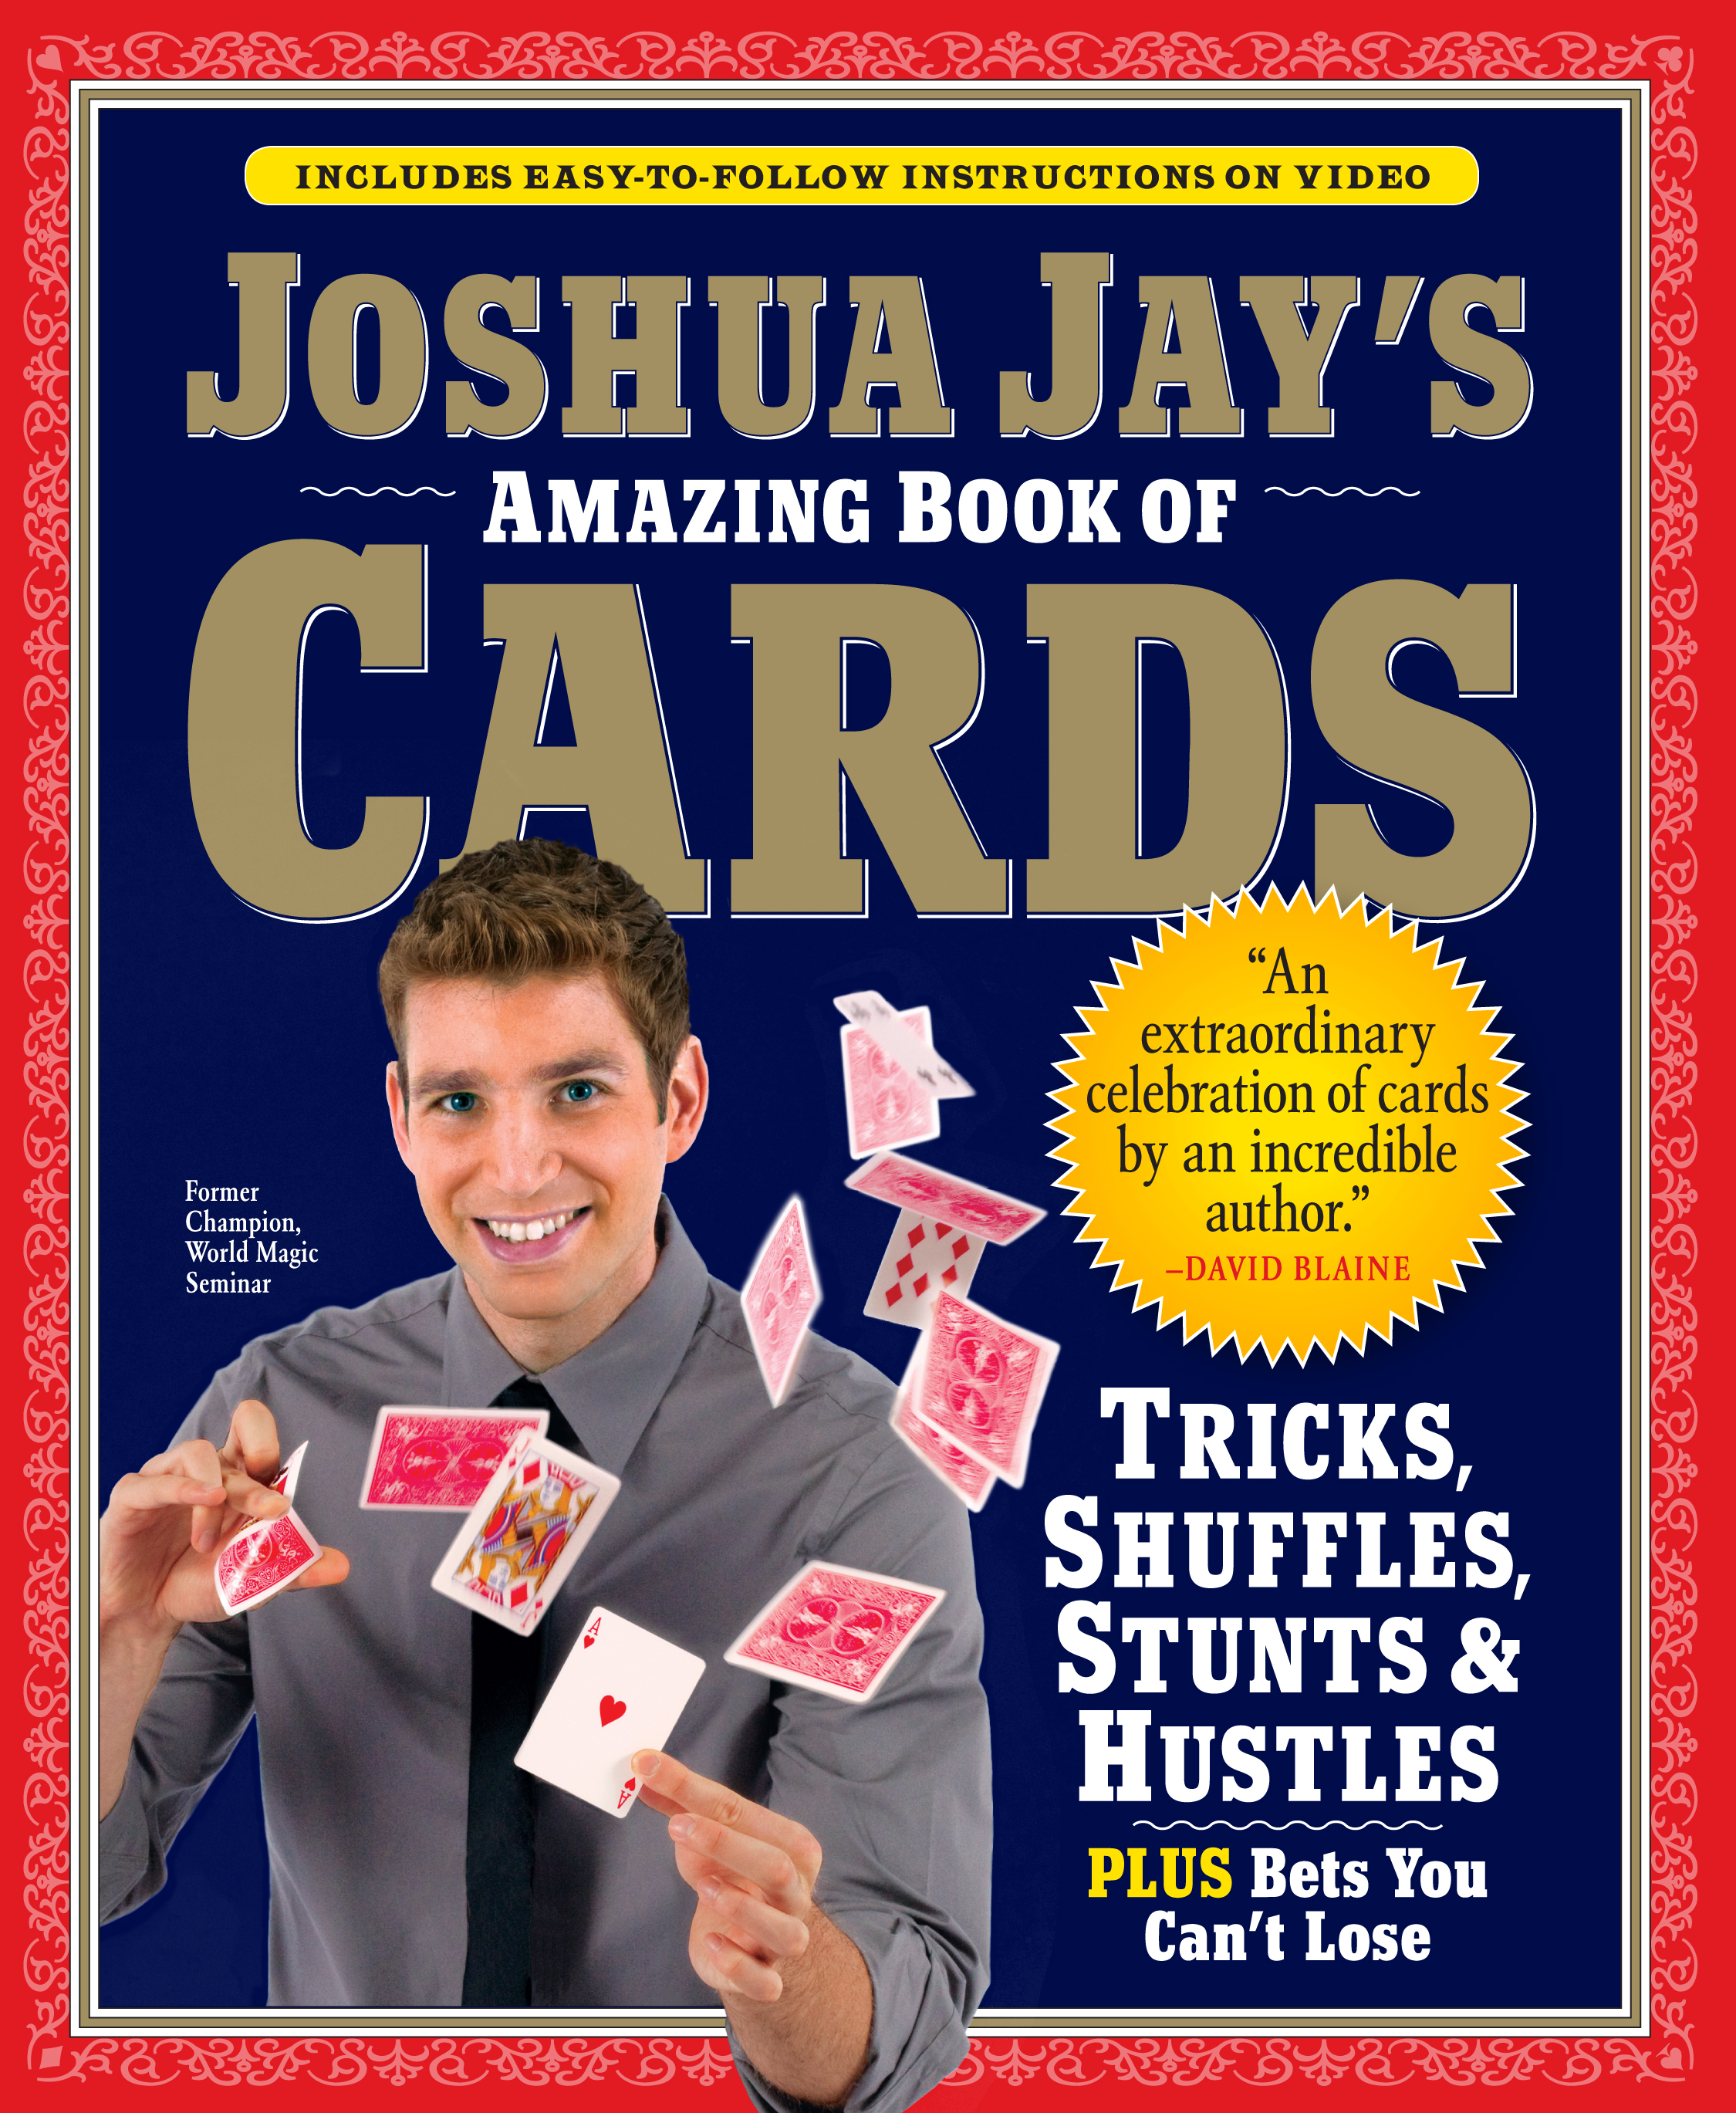 Joshua Jay's Amazing Book of Cards